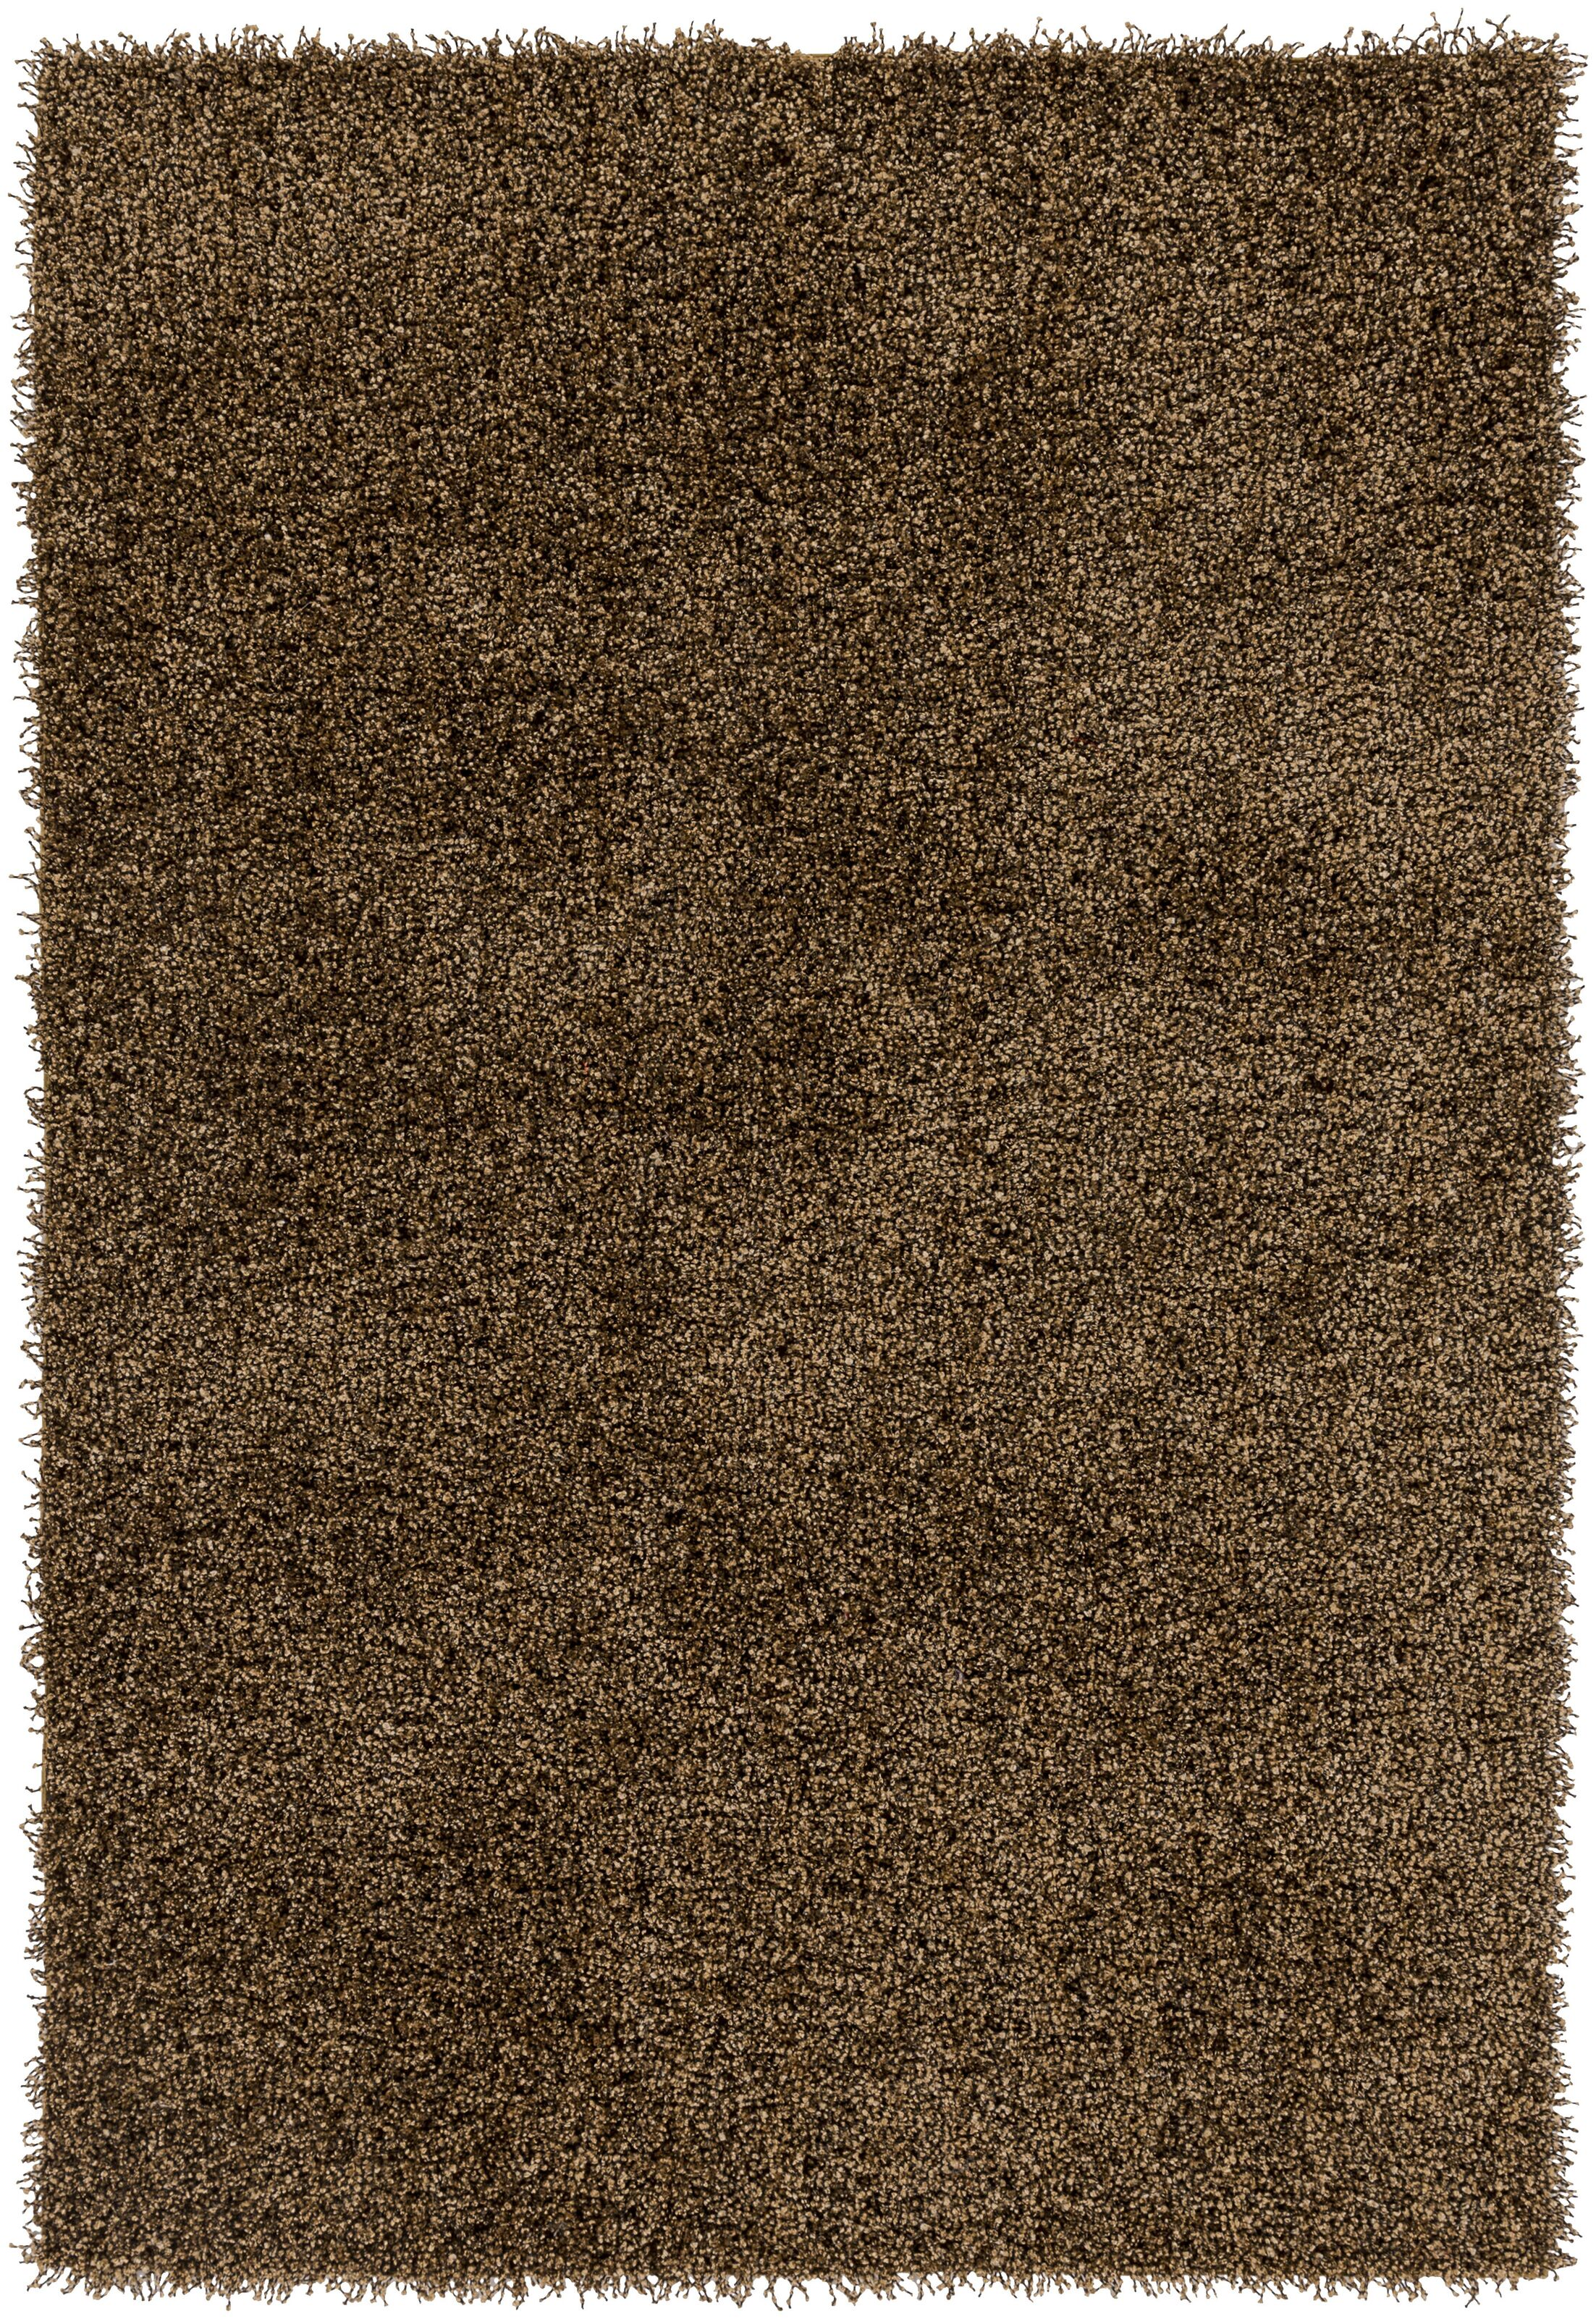 Mchaney Hand-Tufted Brown Area Rug Rug Size: Rectangle 8' x 10'